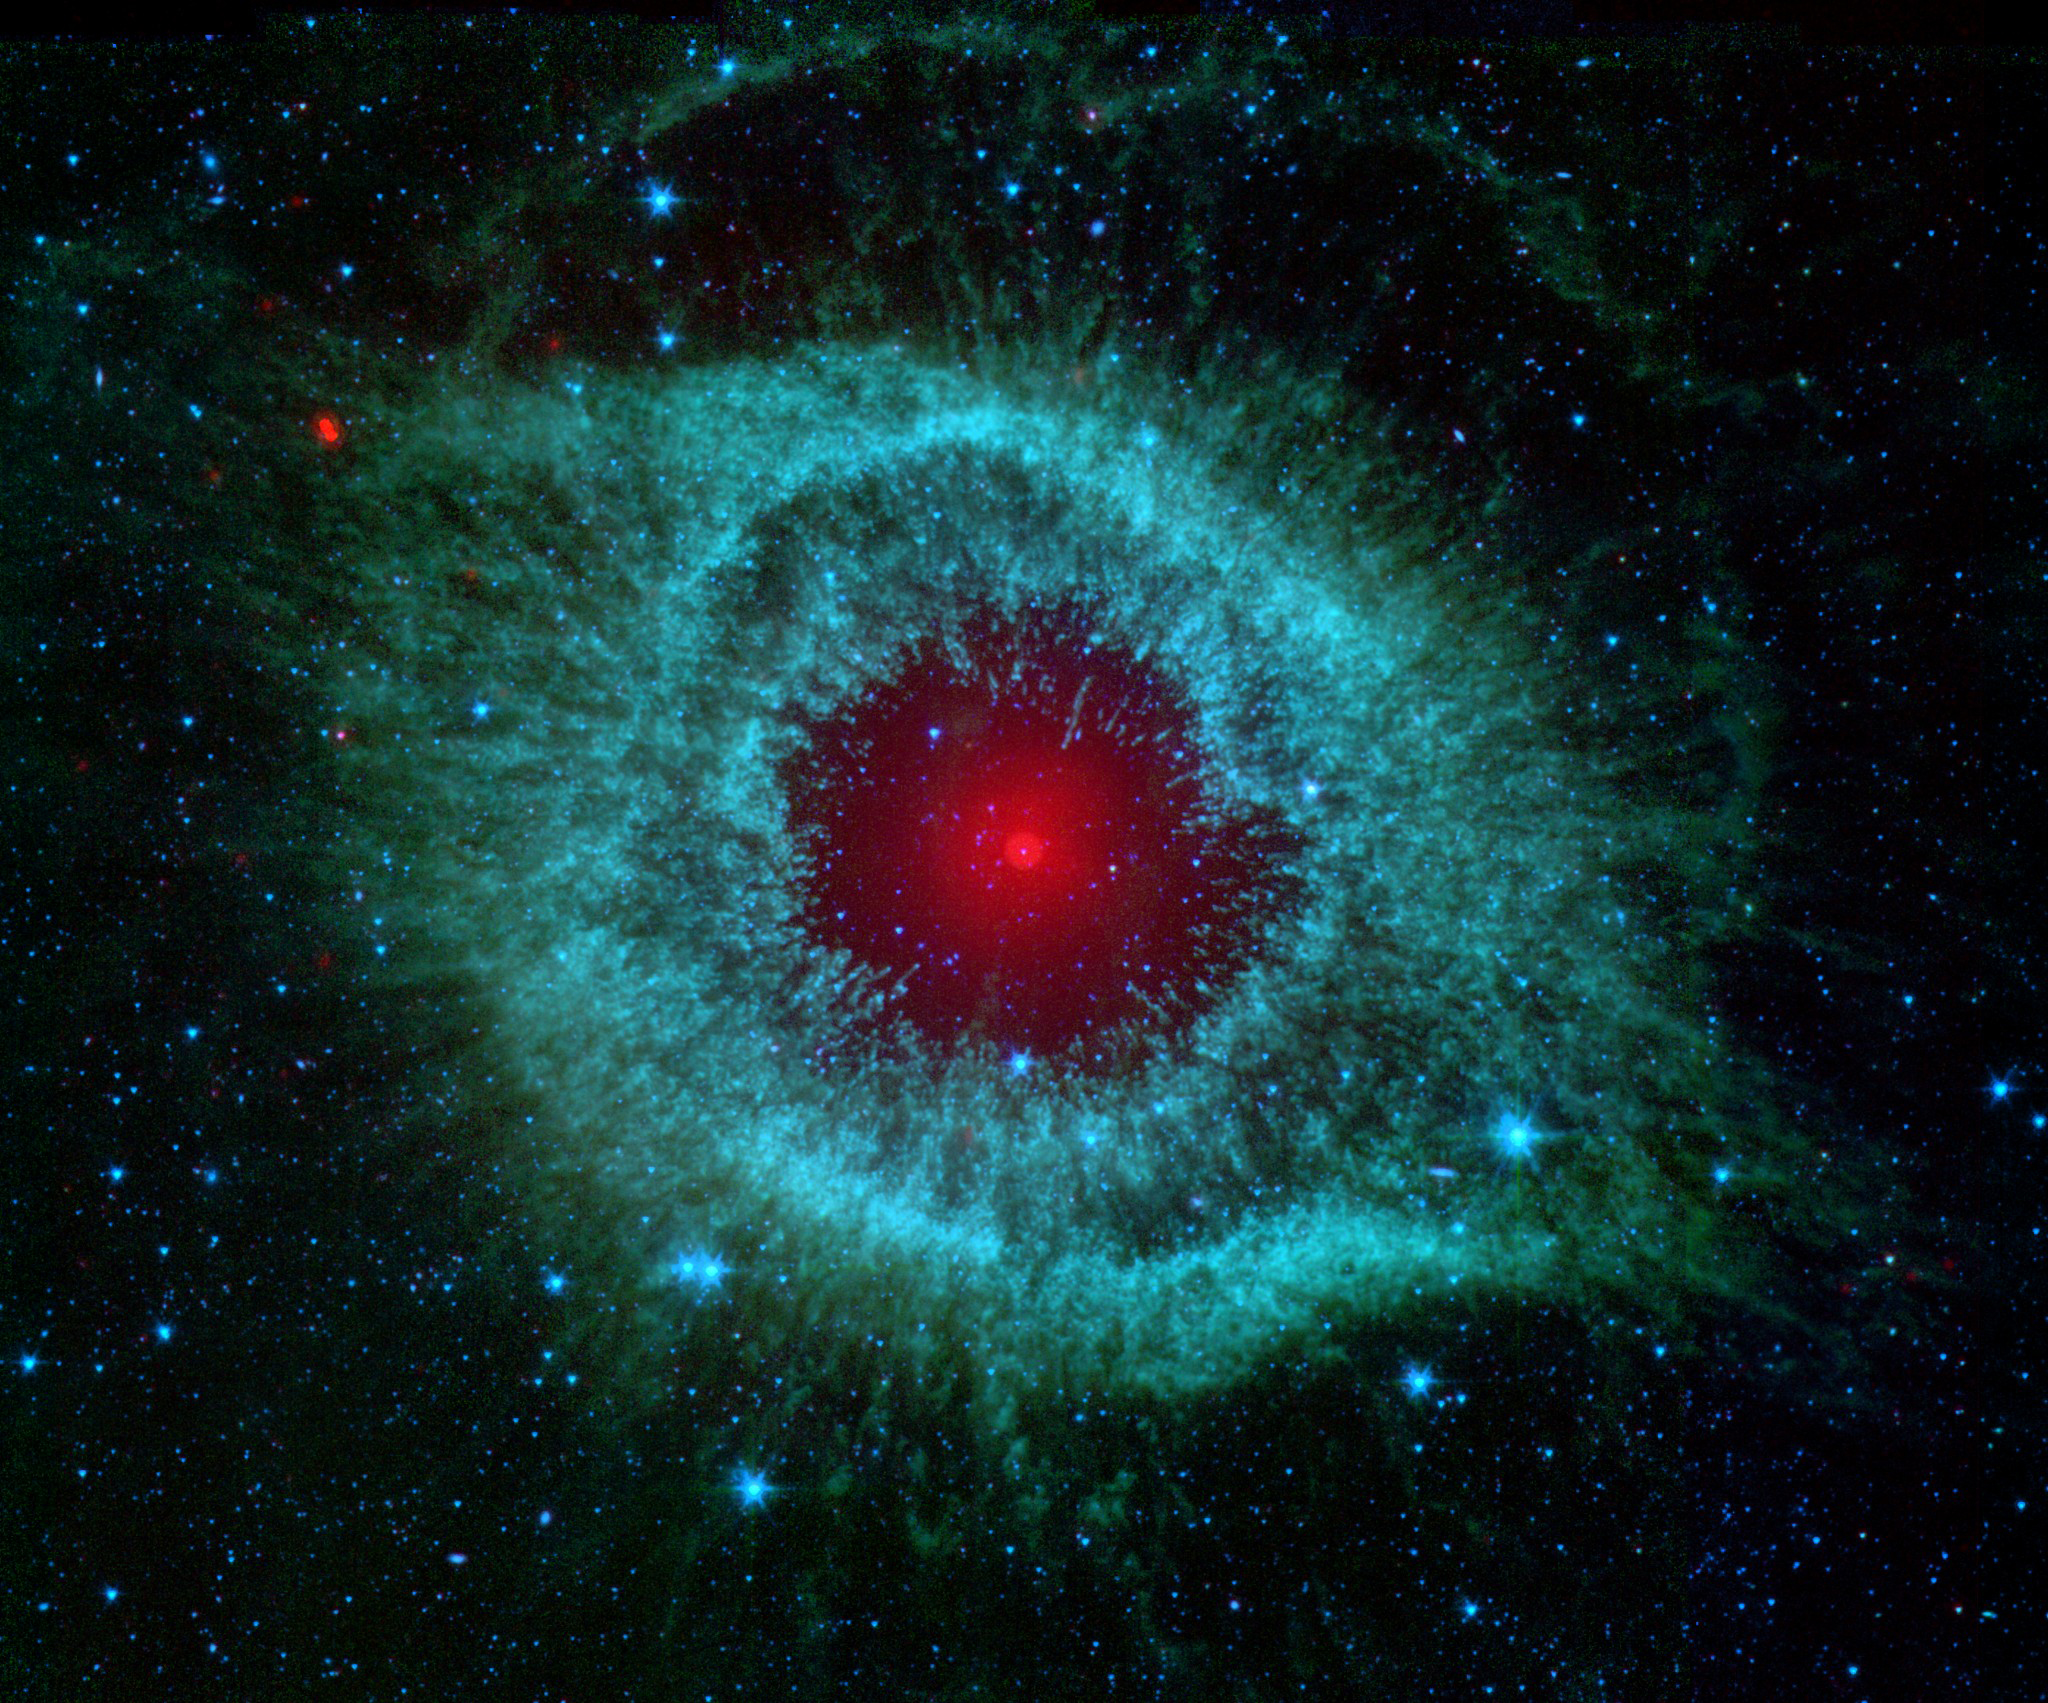 3d picture of stellar nebula - photo #45